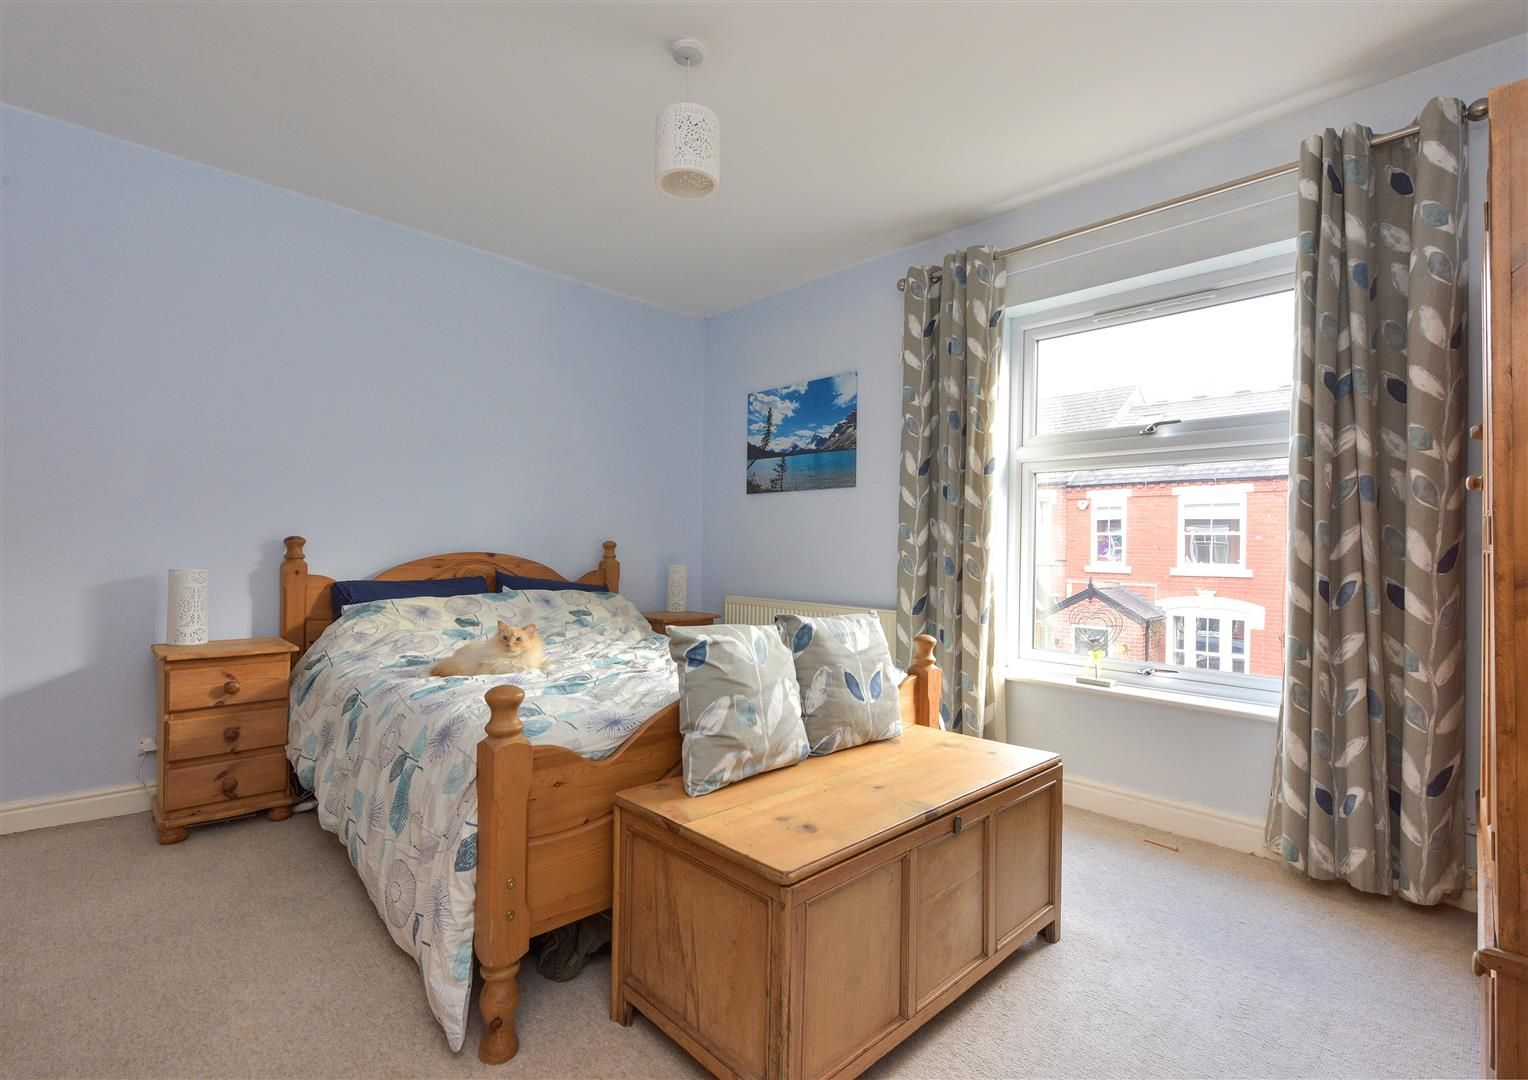 3 bed end-of-terrace for sale  - Property Image 9